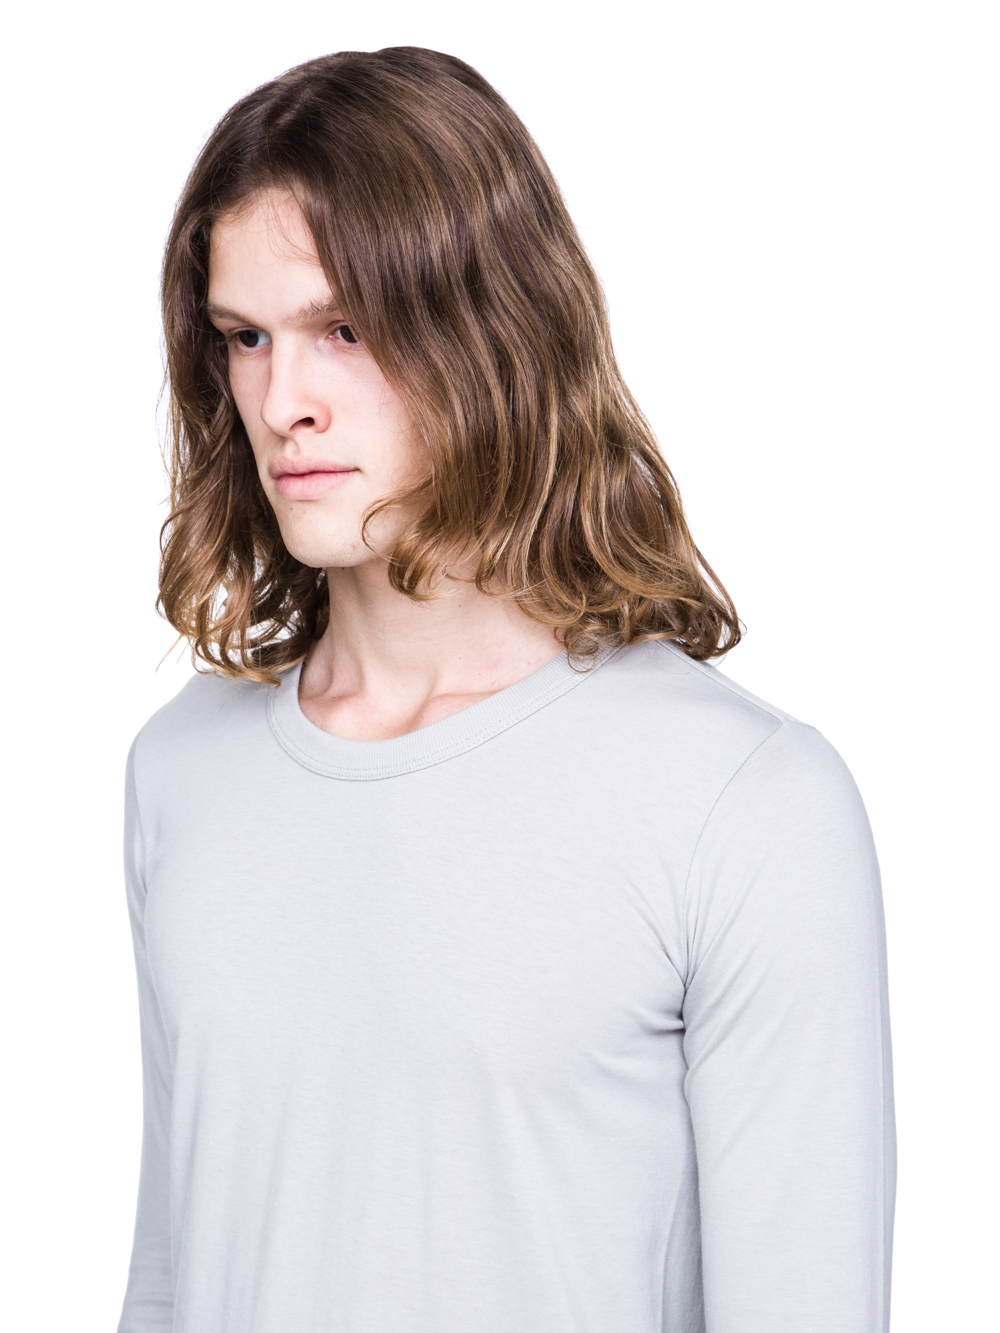 RICK OWENS SS19 BABEL BASIC LONGSLEEVE TEE IN OYSTER